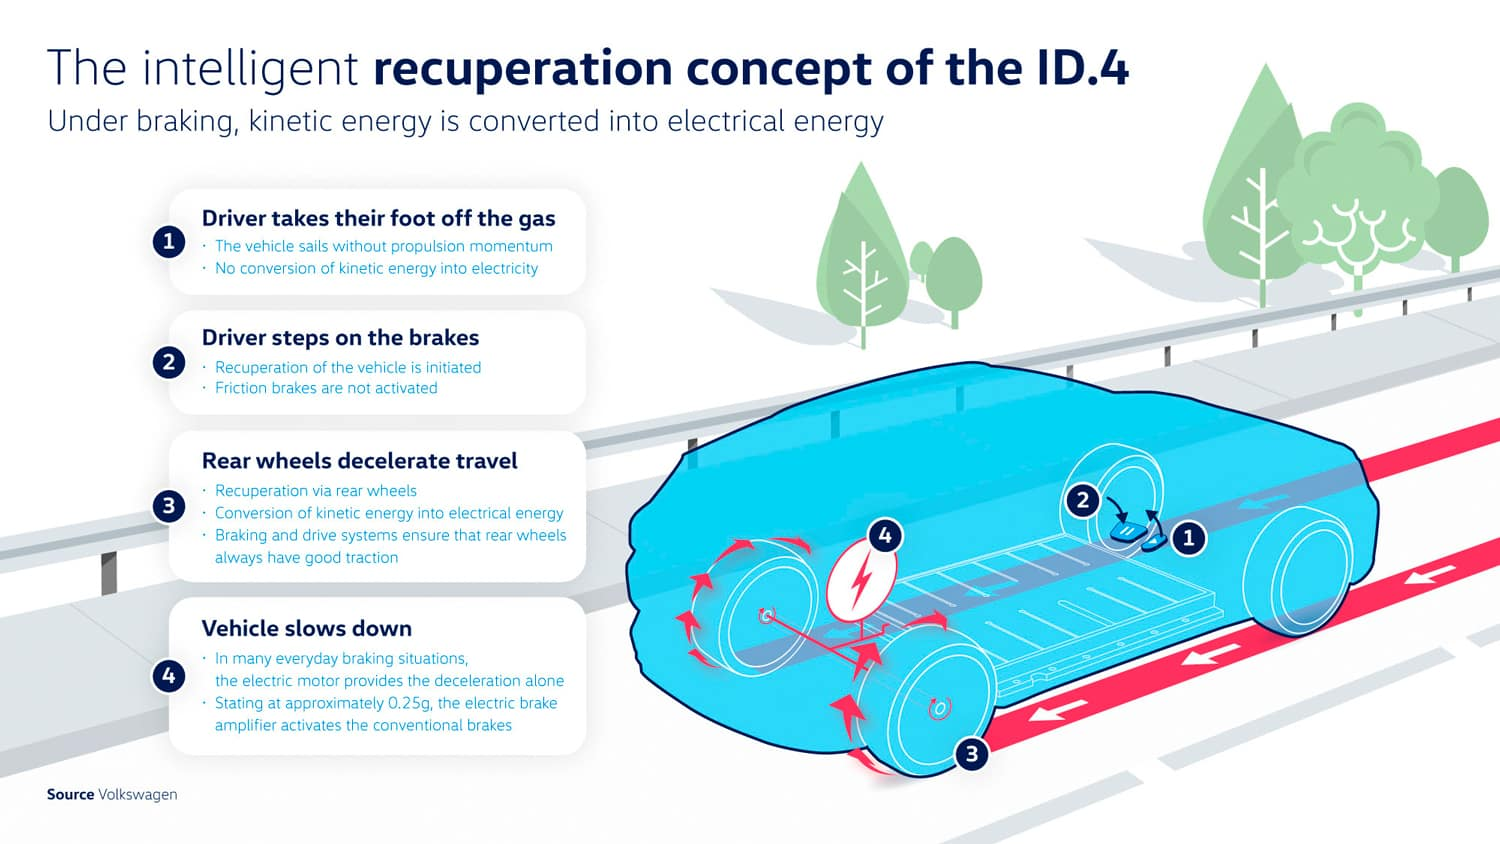 should you brake or coast to recover energy in the new electric VW